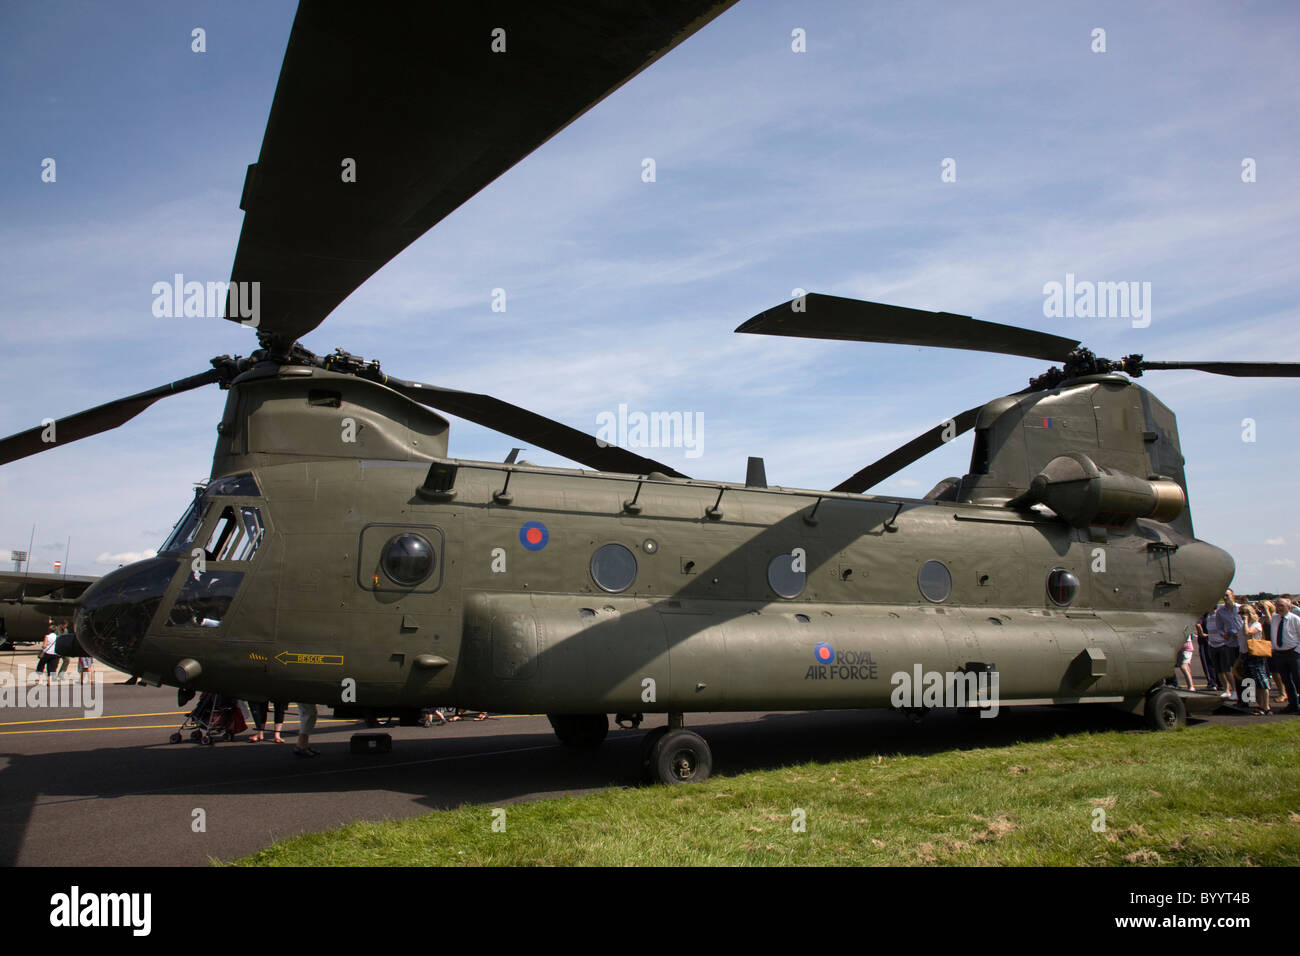 Static display of Chinook helicopter - Stock Image